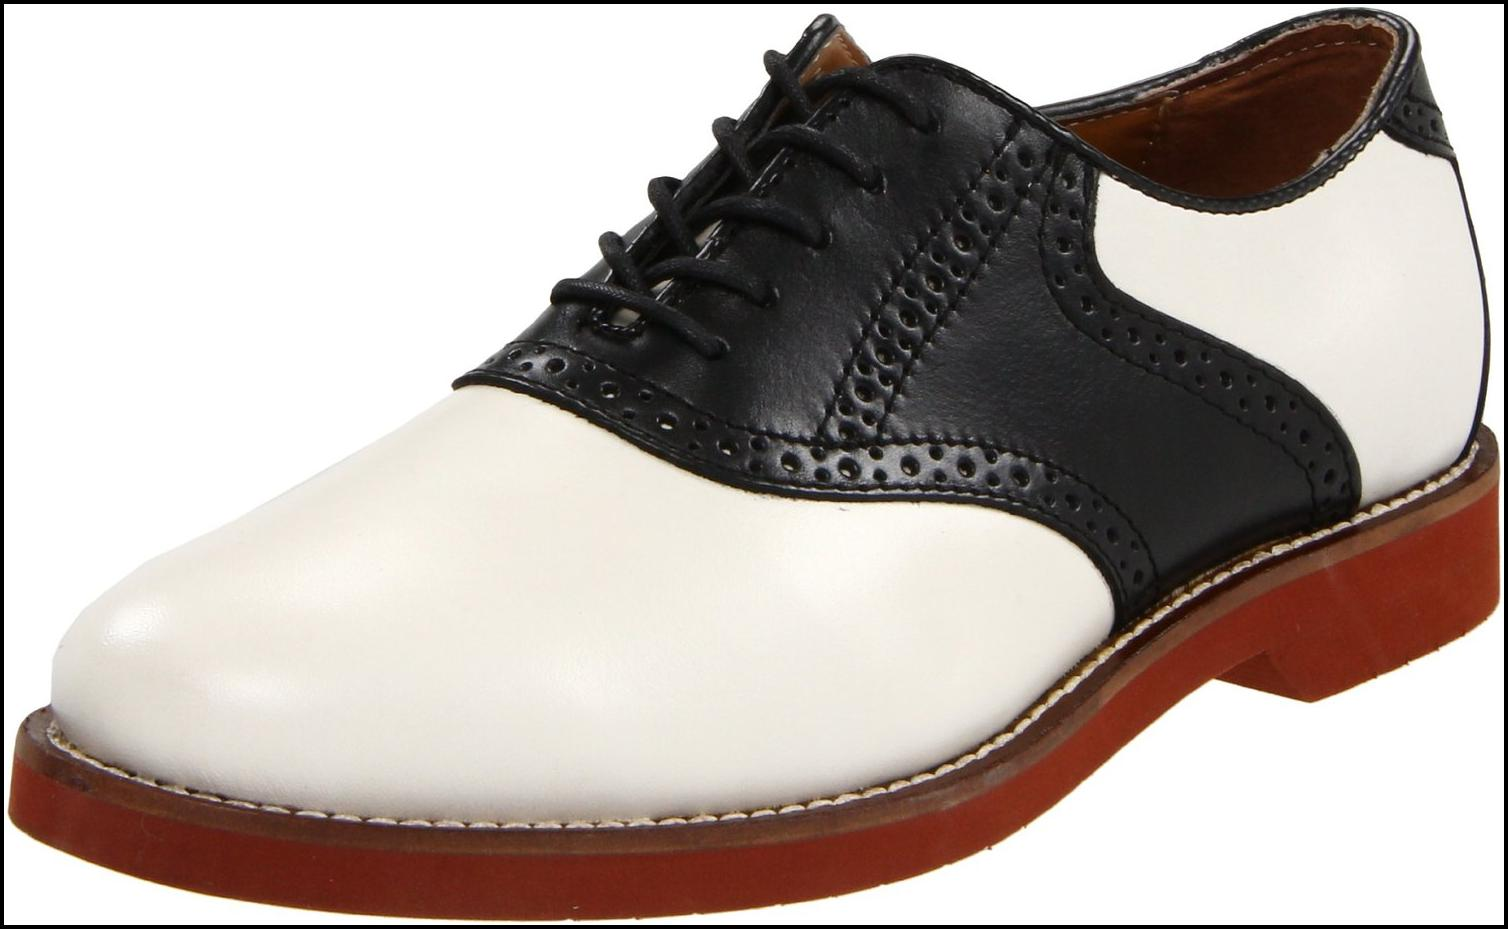 asestilo store saddle oxford shoes for